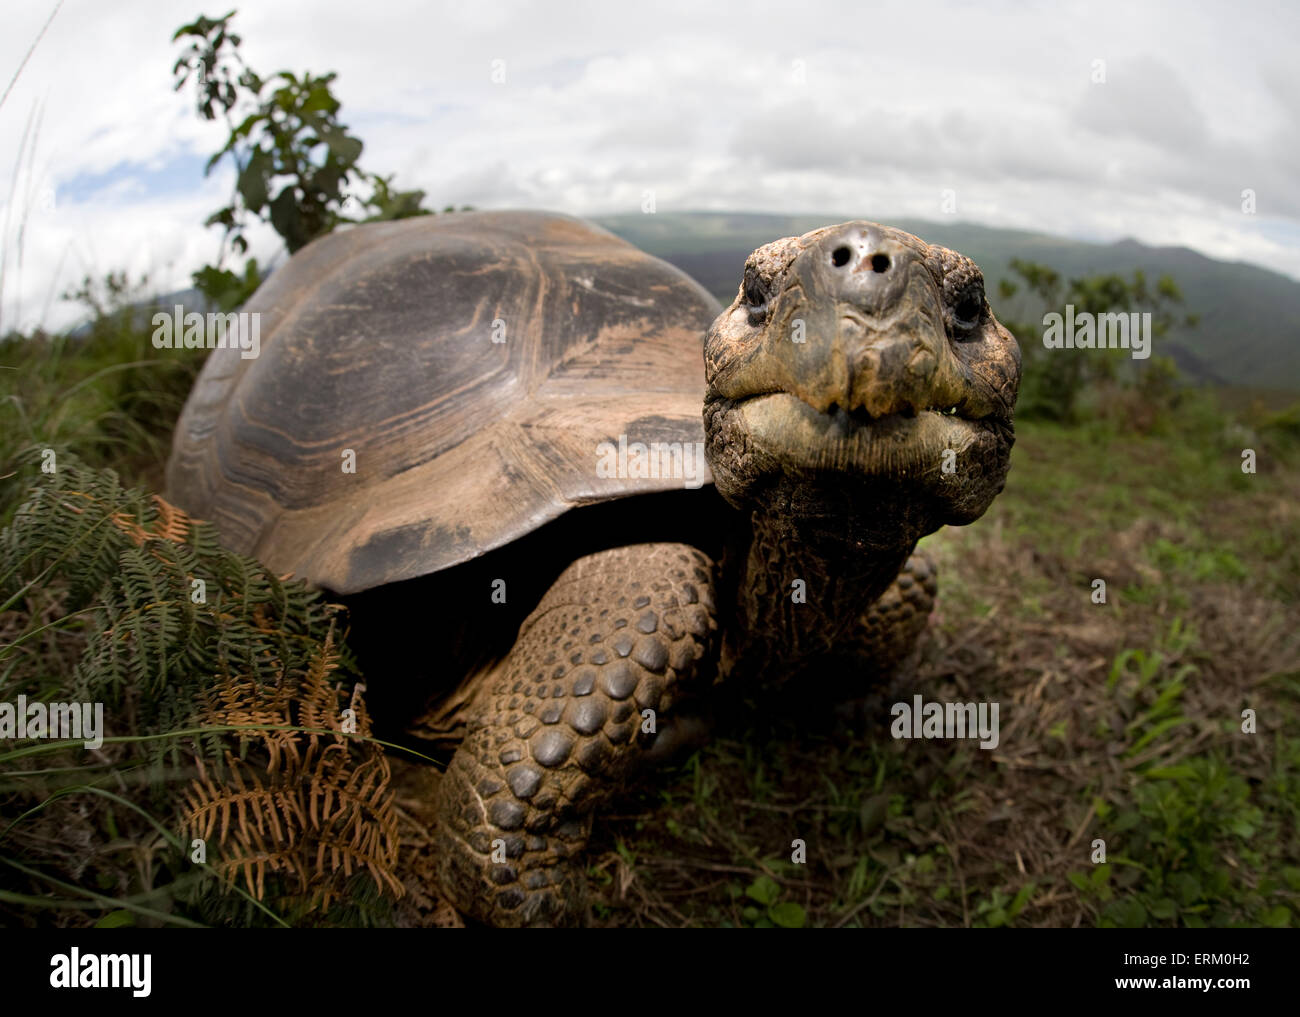 A giant tortoise on Alcedo Volcano in the Galapagos Islands looks straight into the camera at extremely close range. - Stock Image